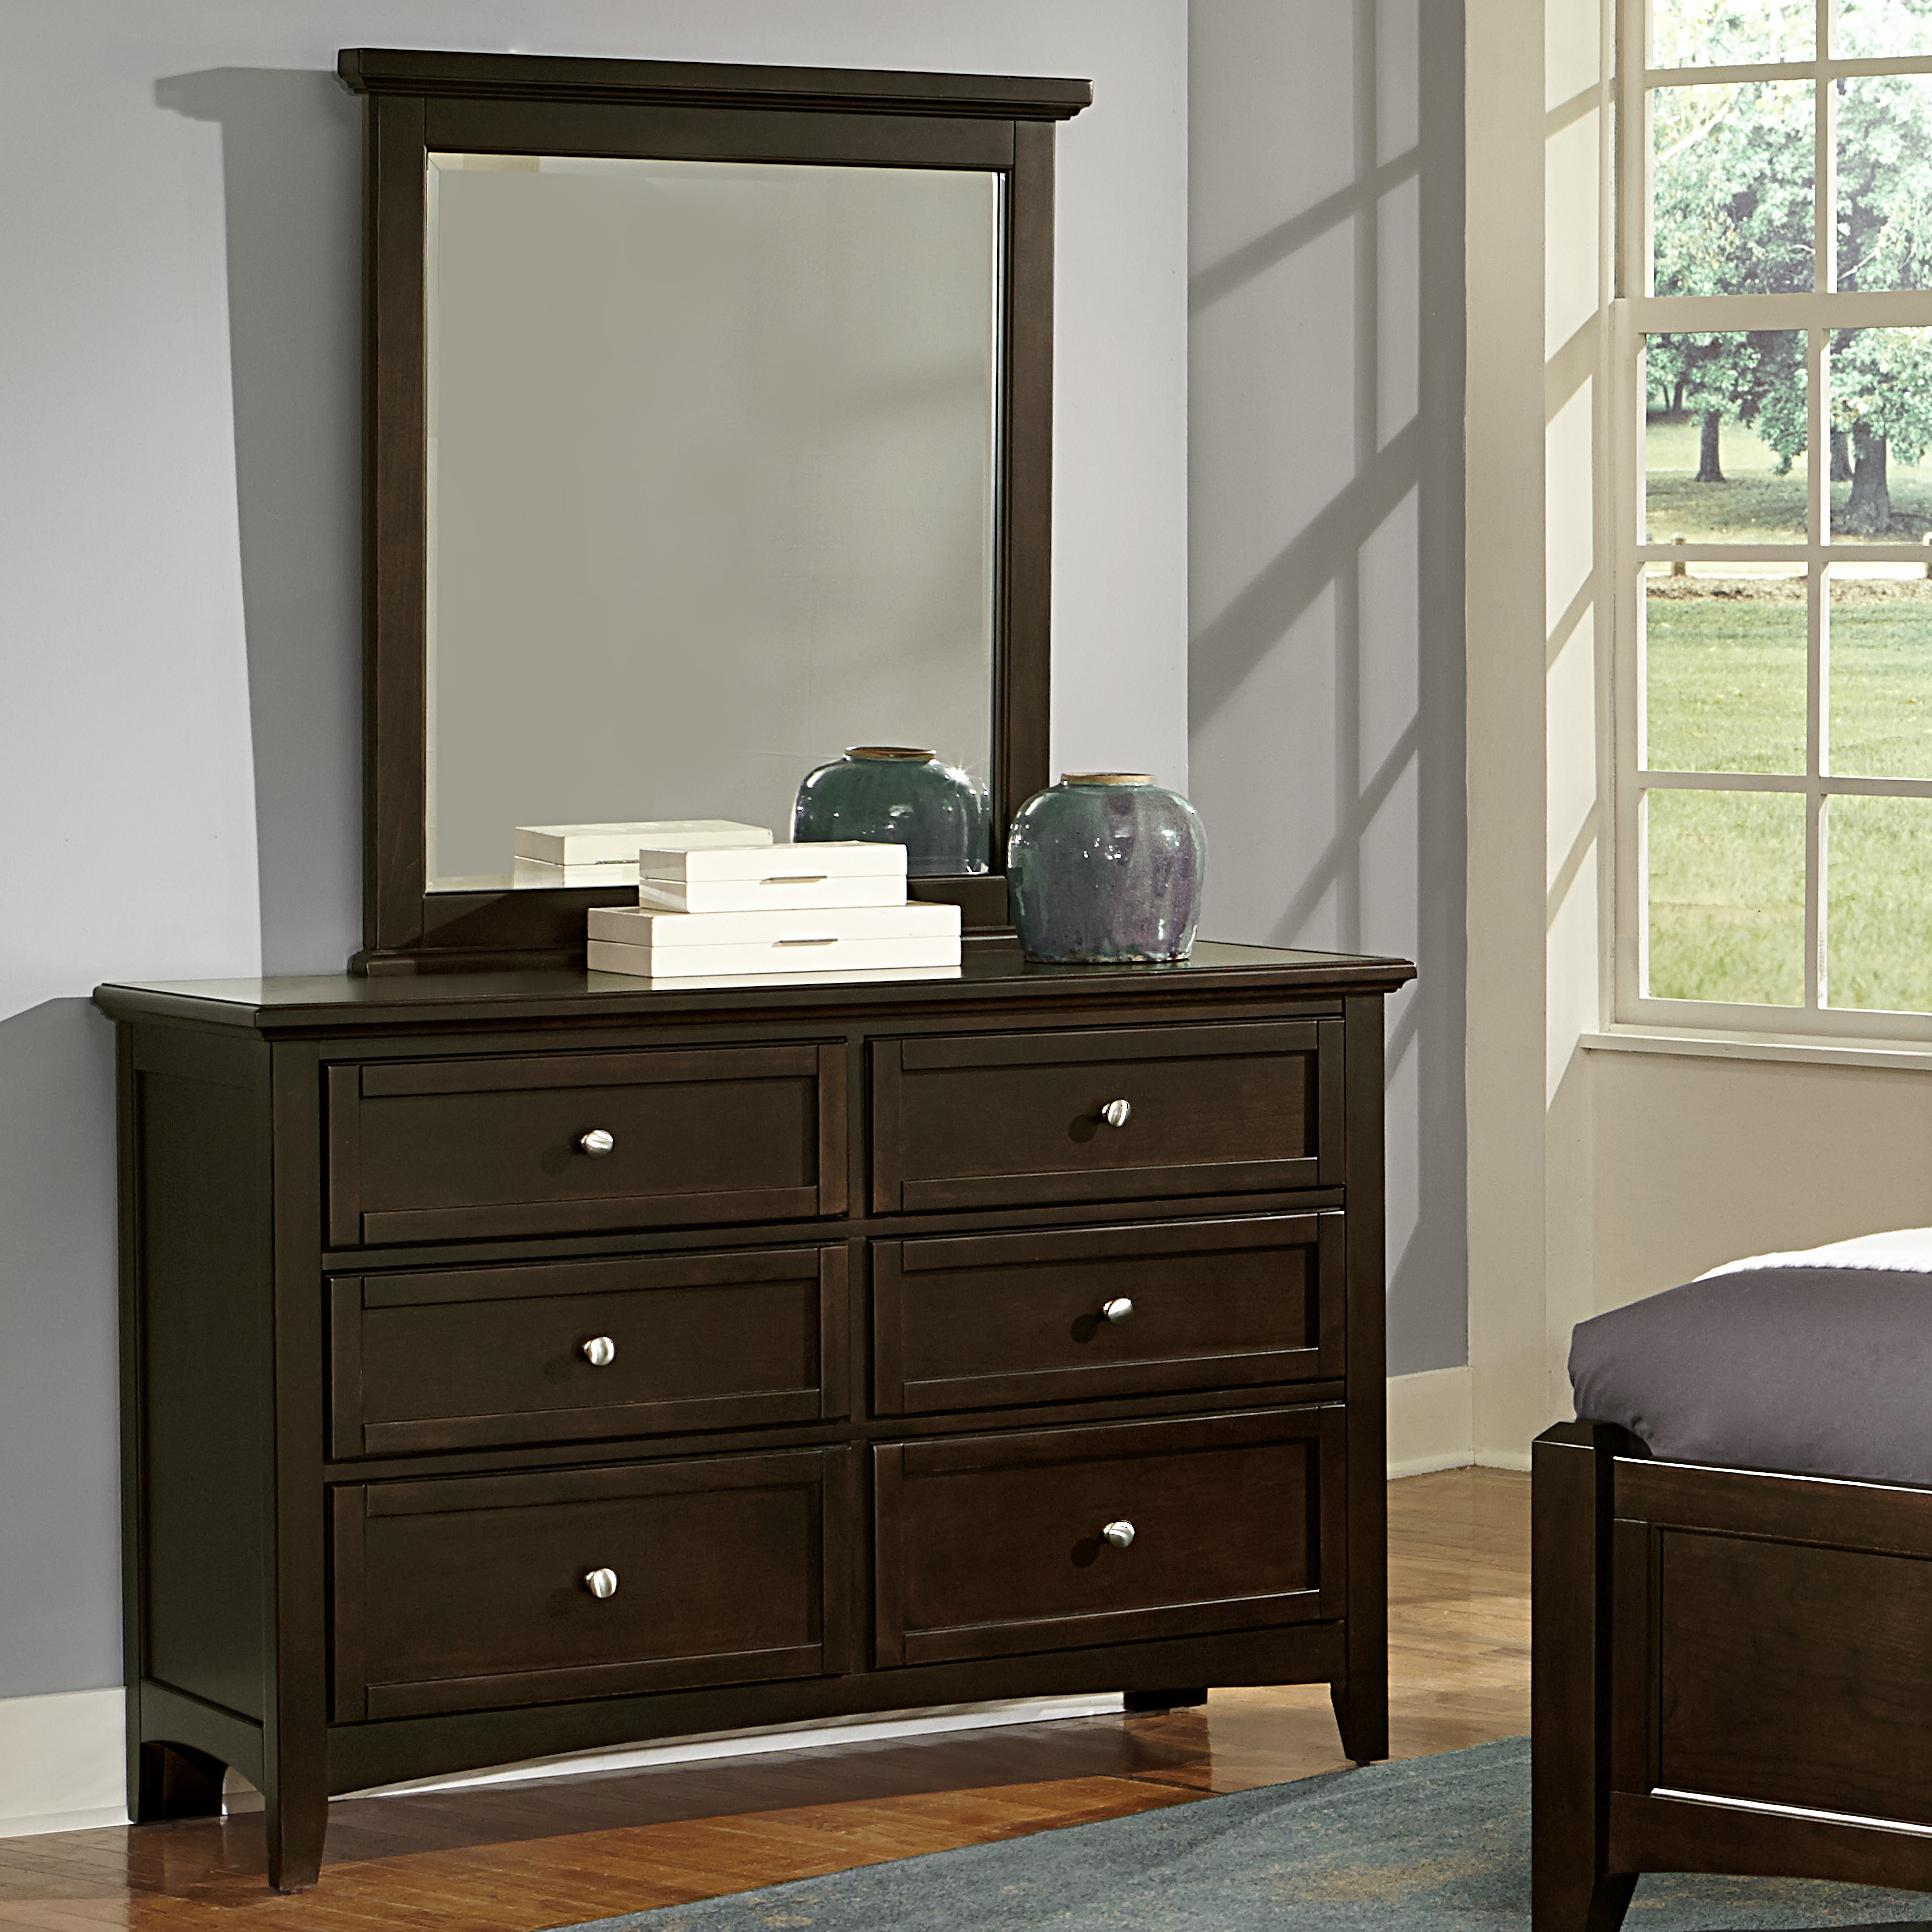 Vaughan Bassett Bonanza Double Dresser & Small Landscape Mirror - Item Number: BB27-001+442